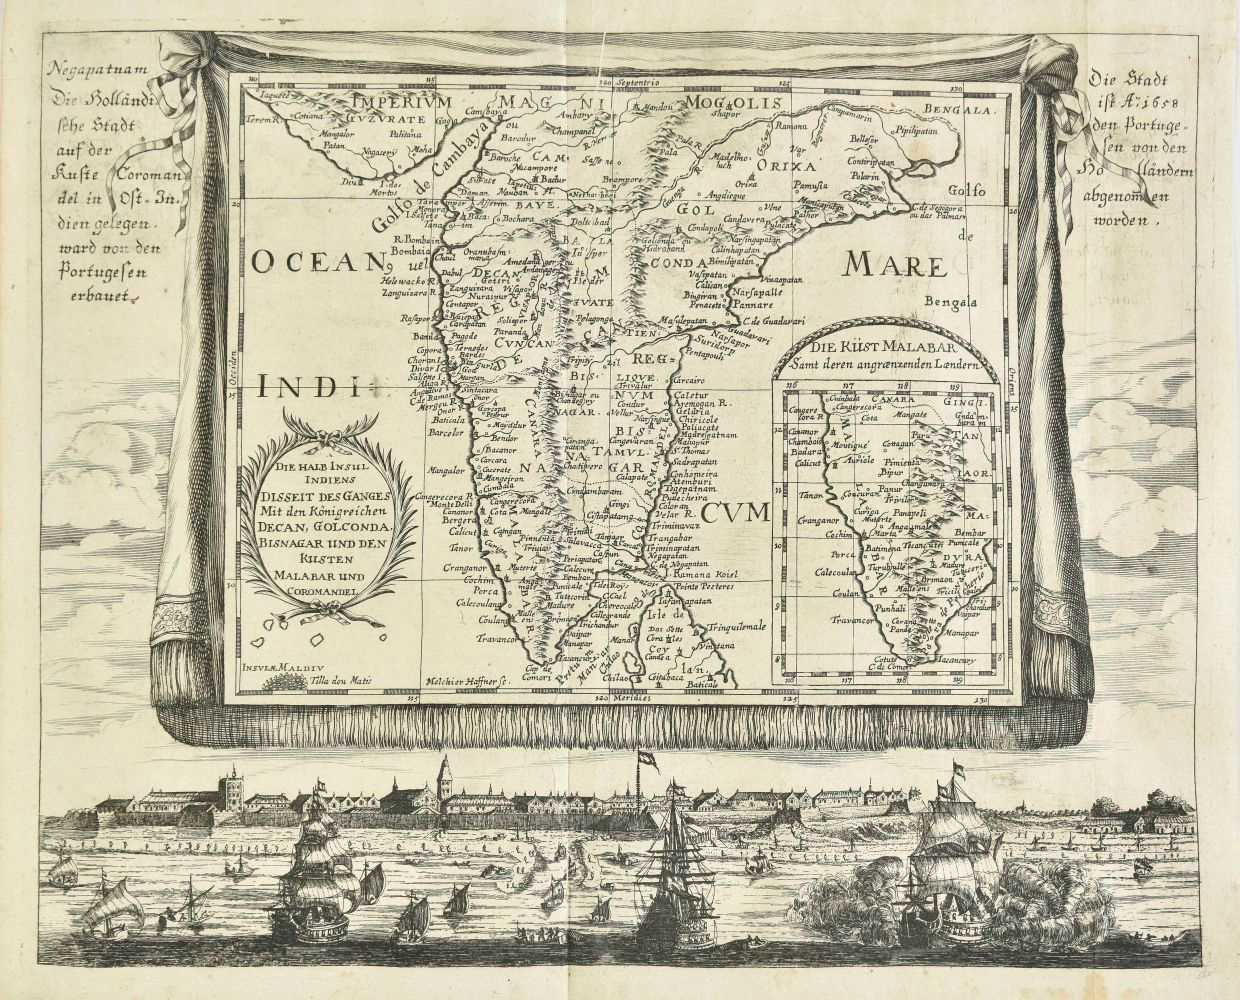 Lot 42-Haffner (Melchior). Five engraved maps, circa 1688